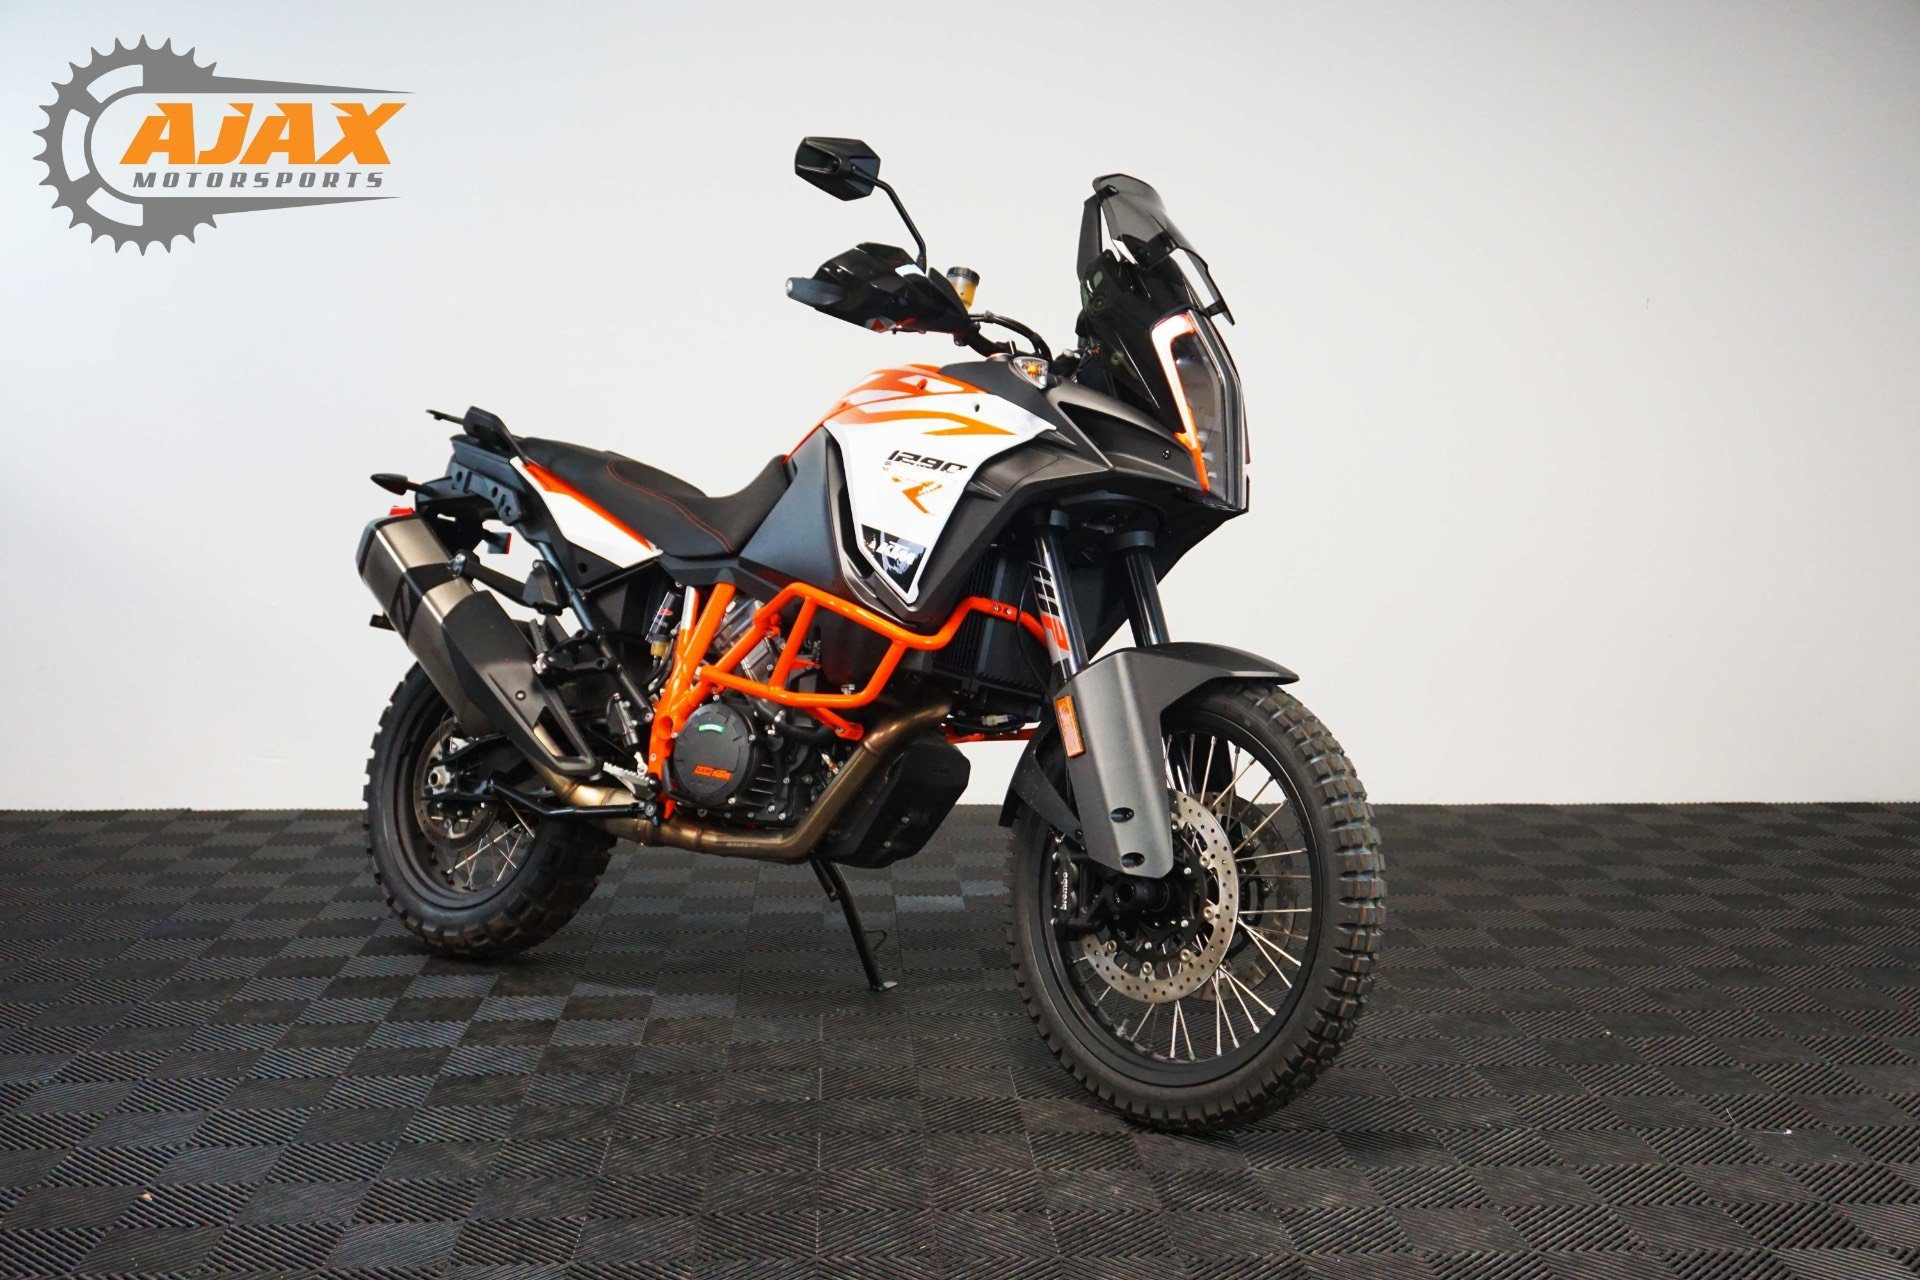 2018 KTM 1290 Super Adventure R in Oklahoma City, Oklahoma